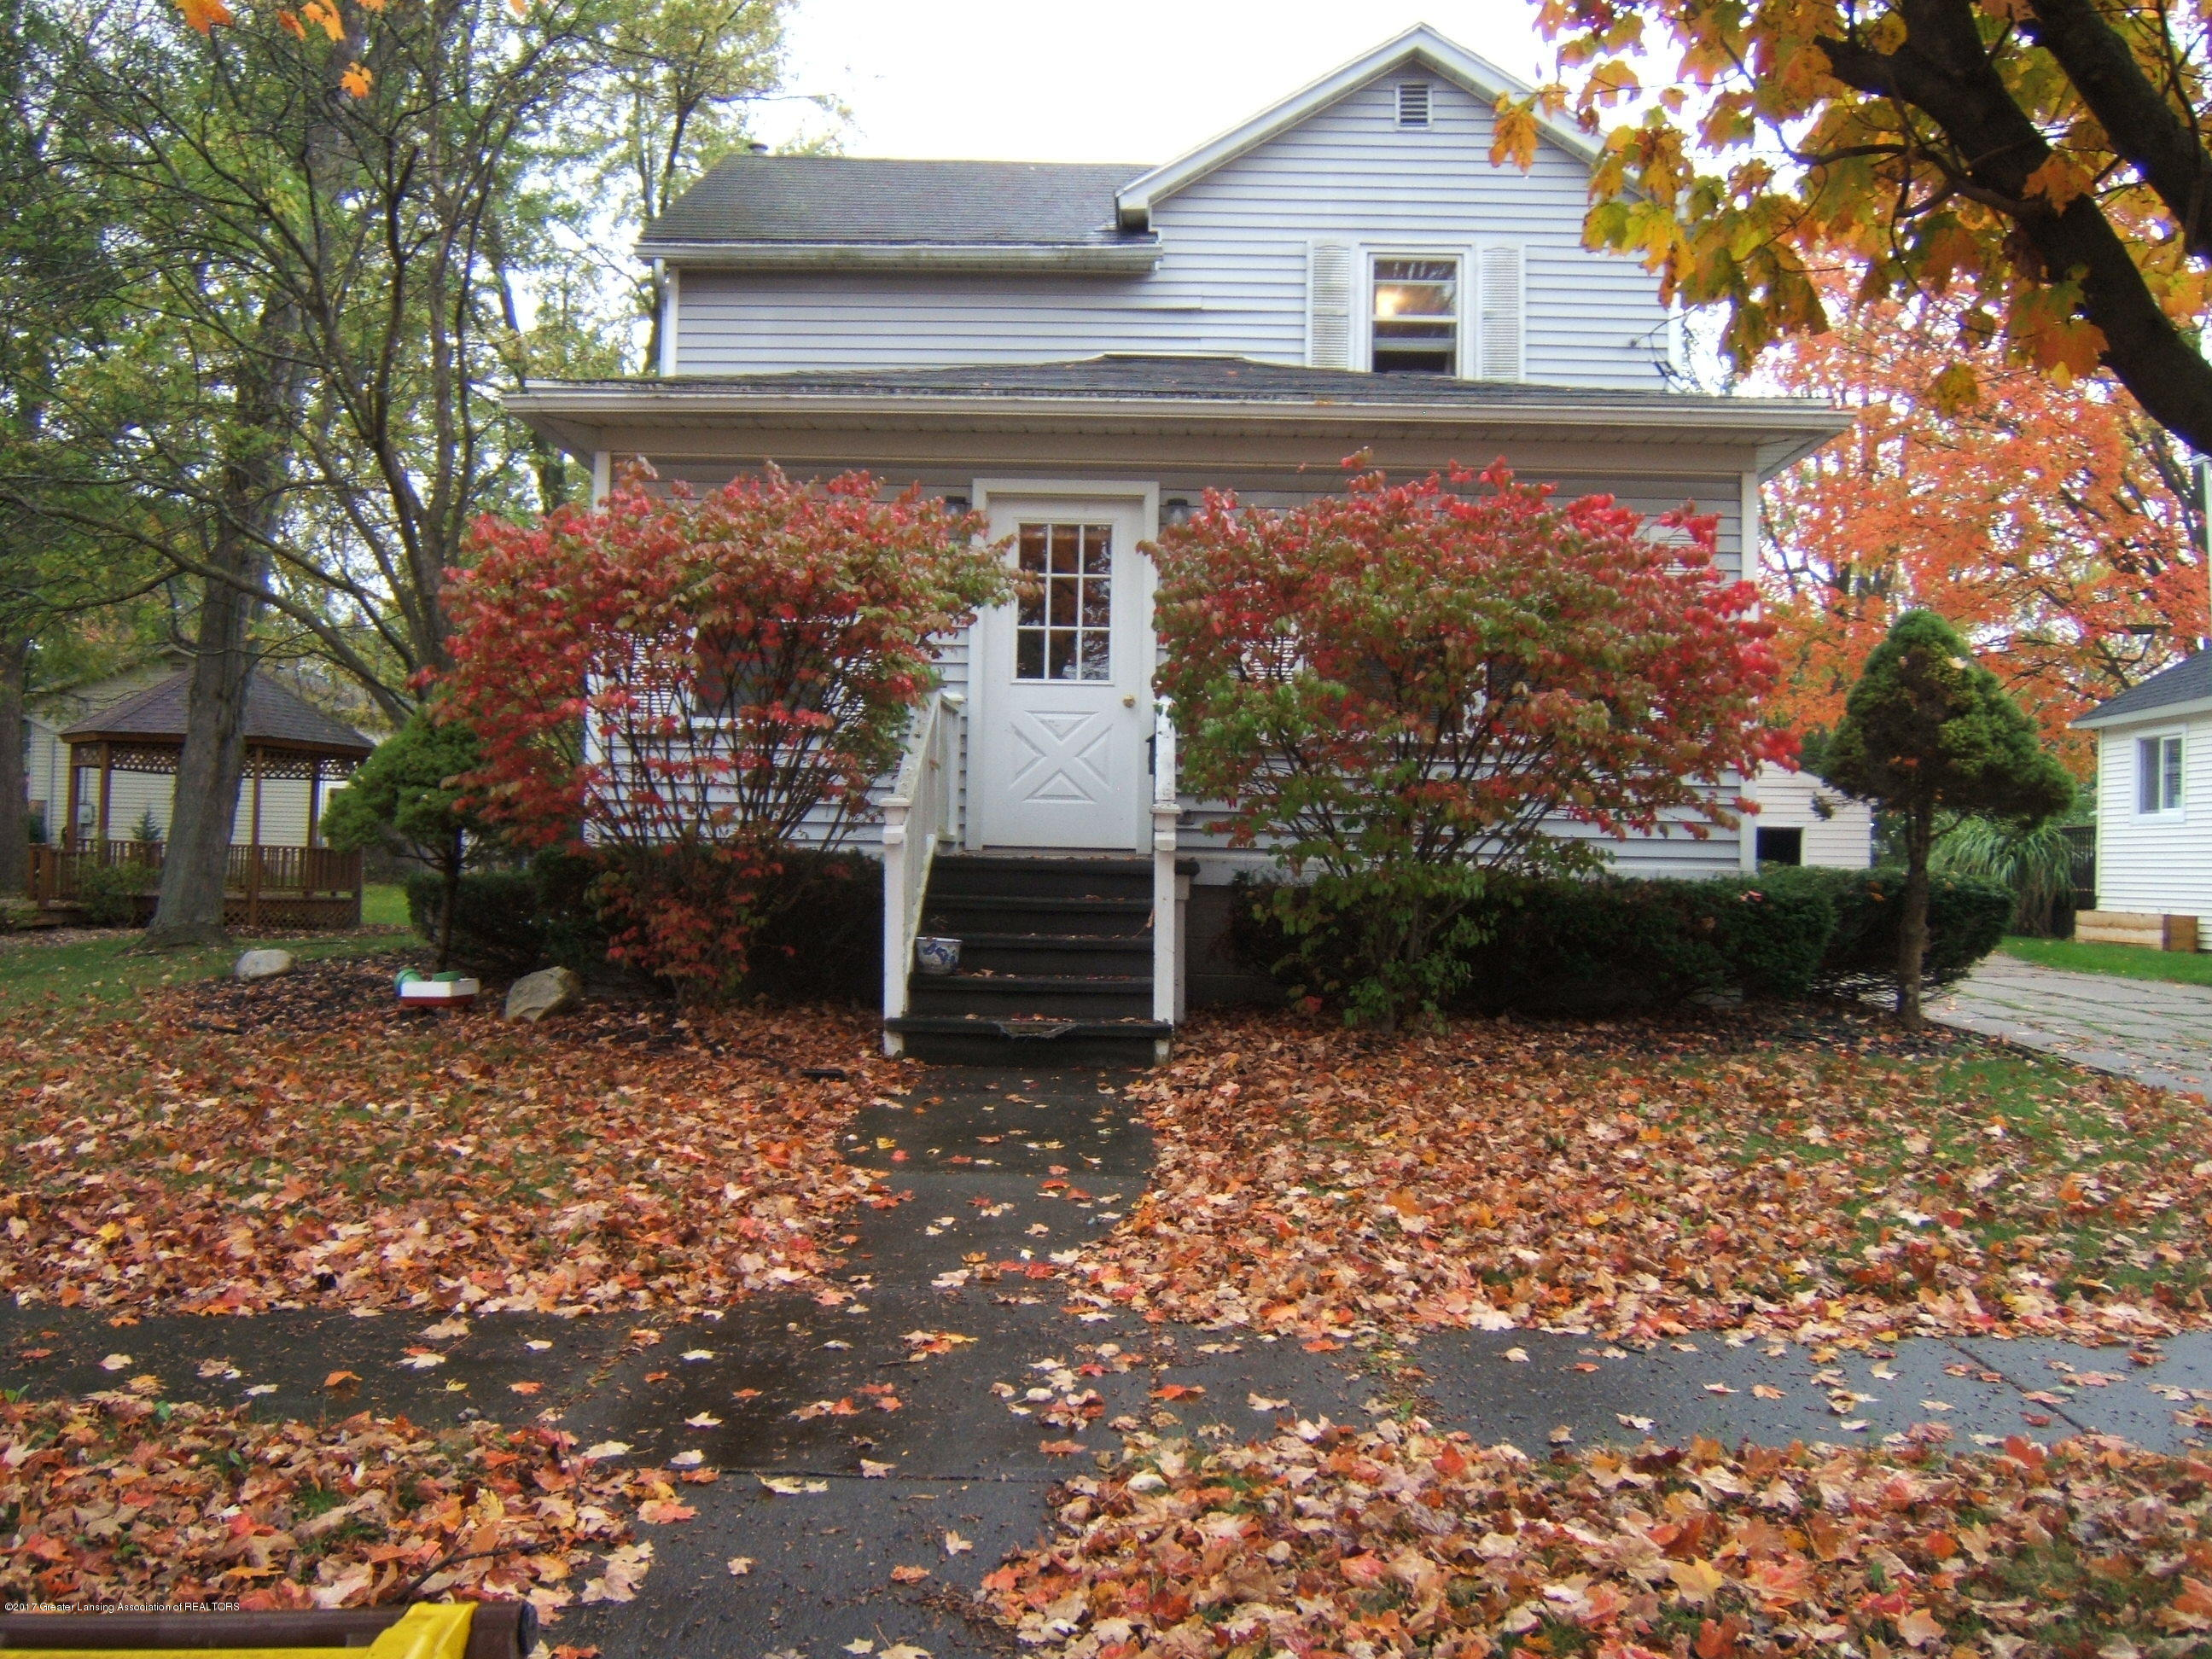 406 S Mead St - 406 S Mead - 1